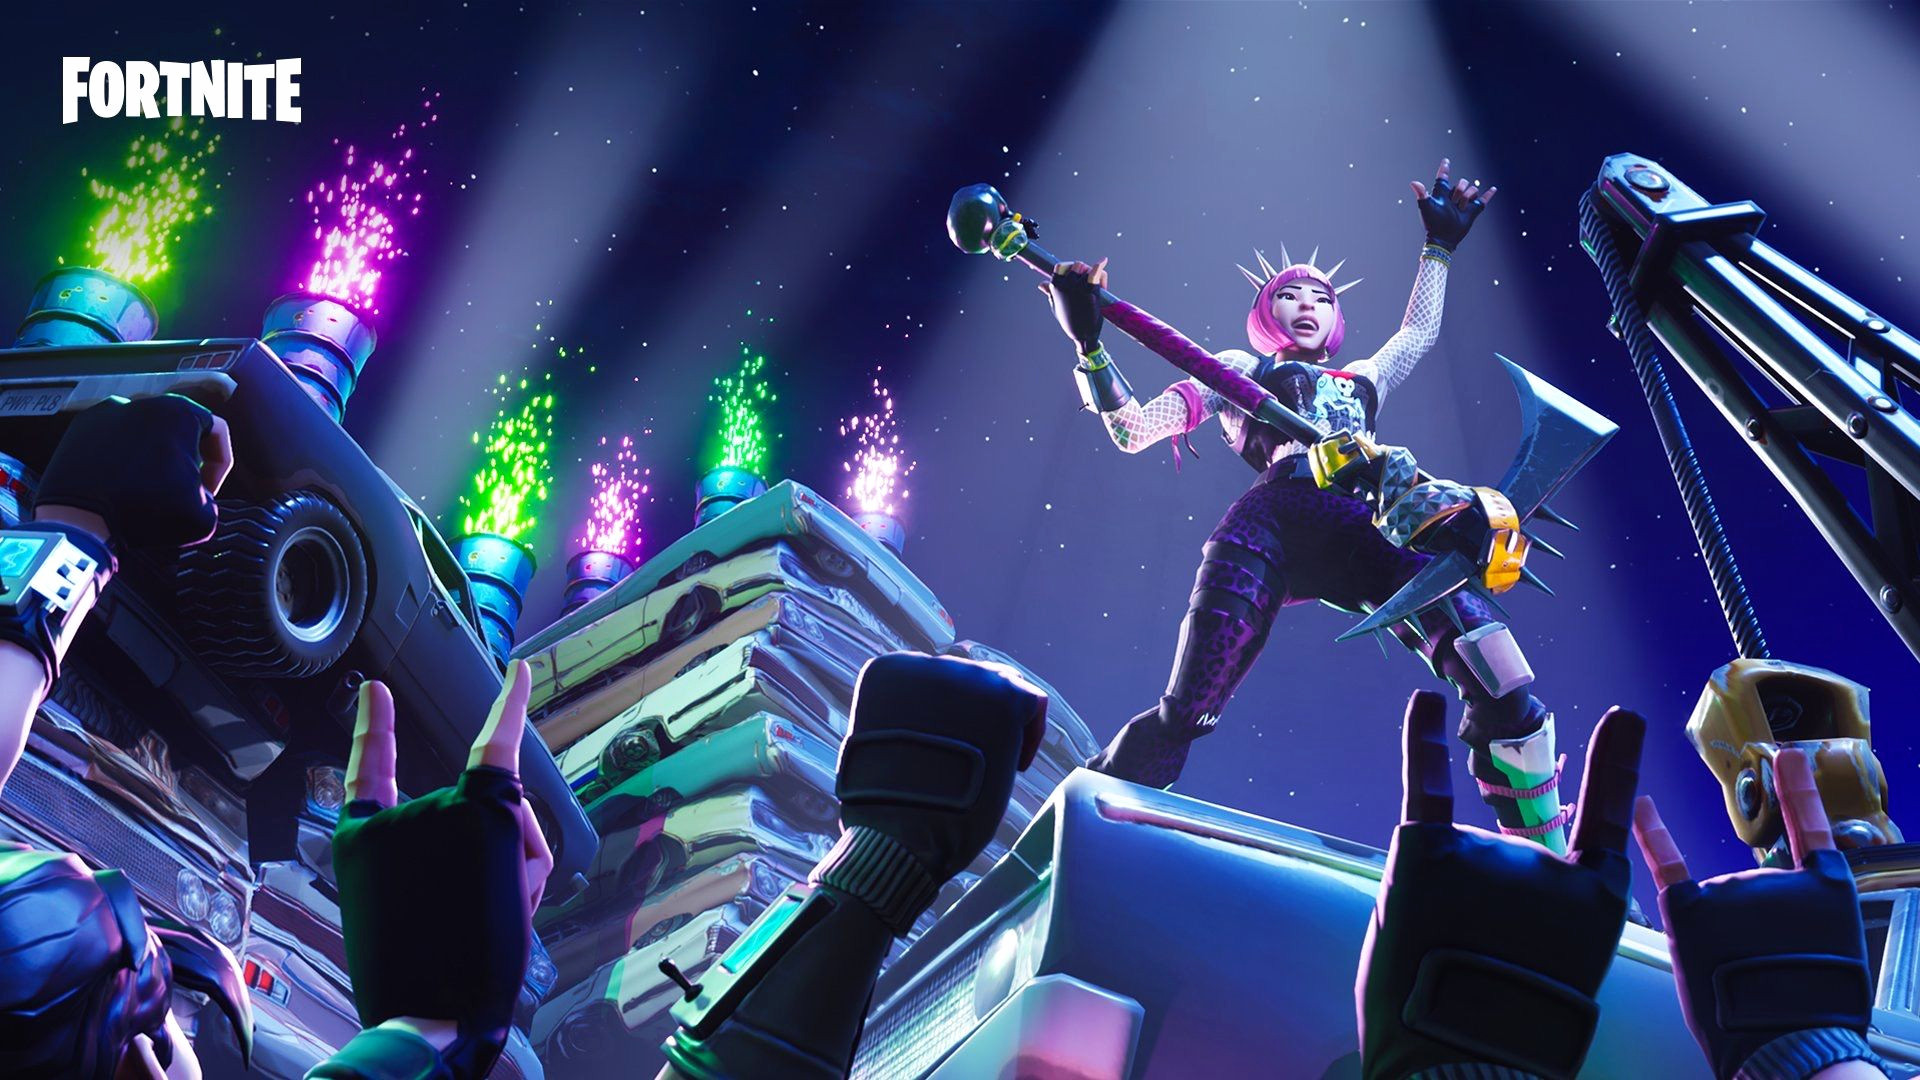 fortnite game wallpaper background hd 64421